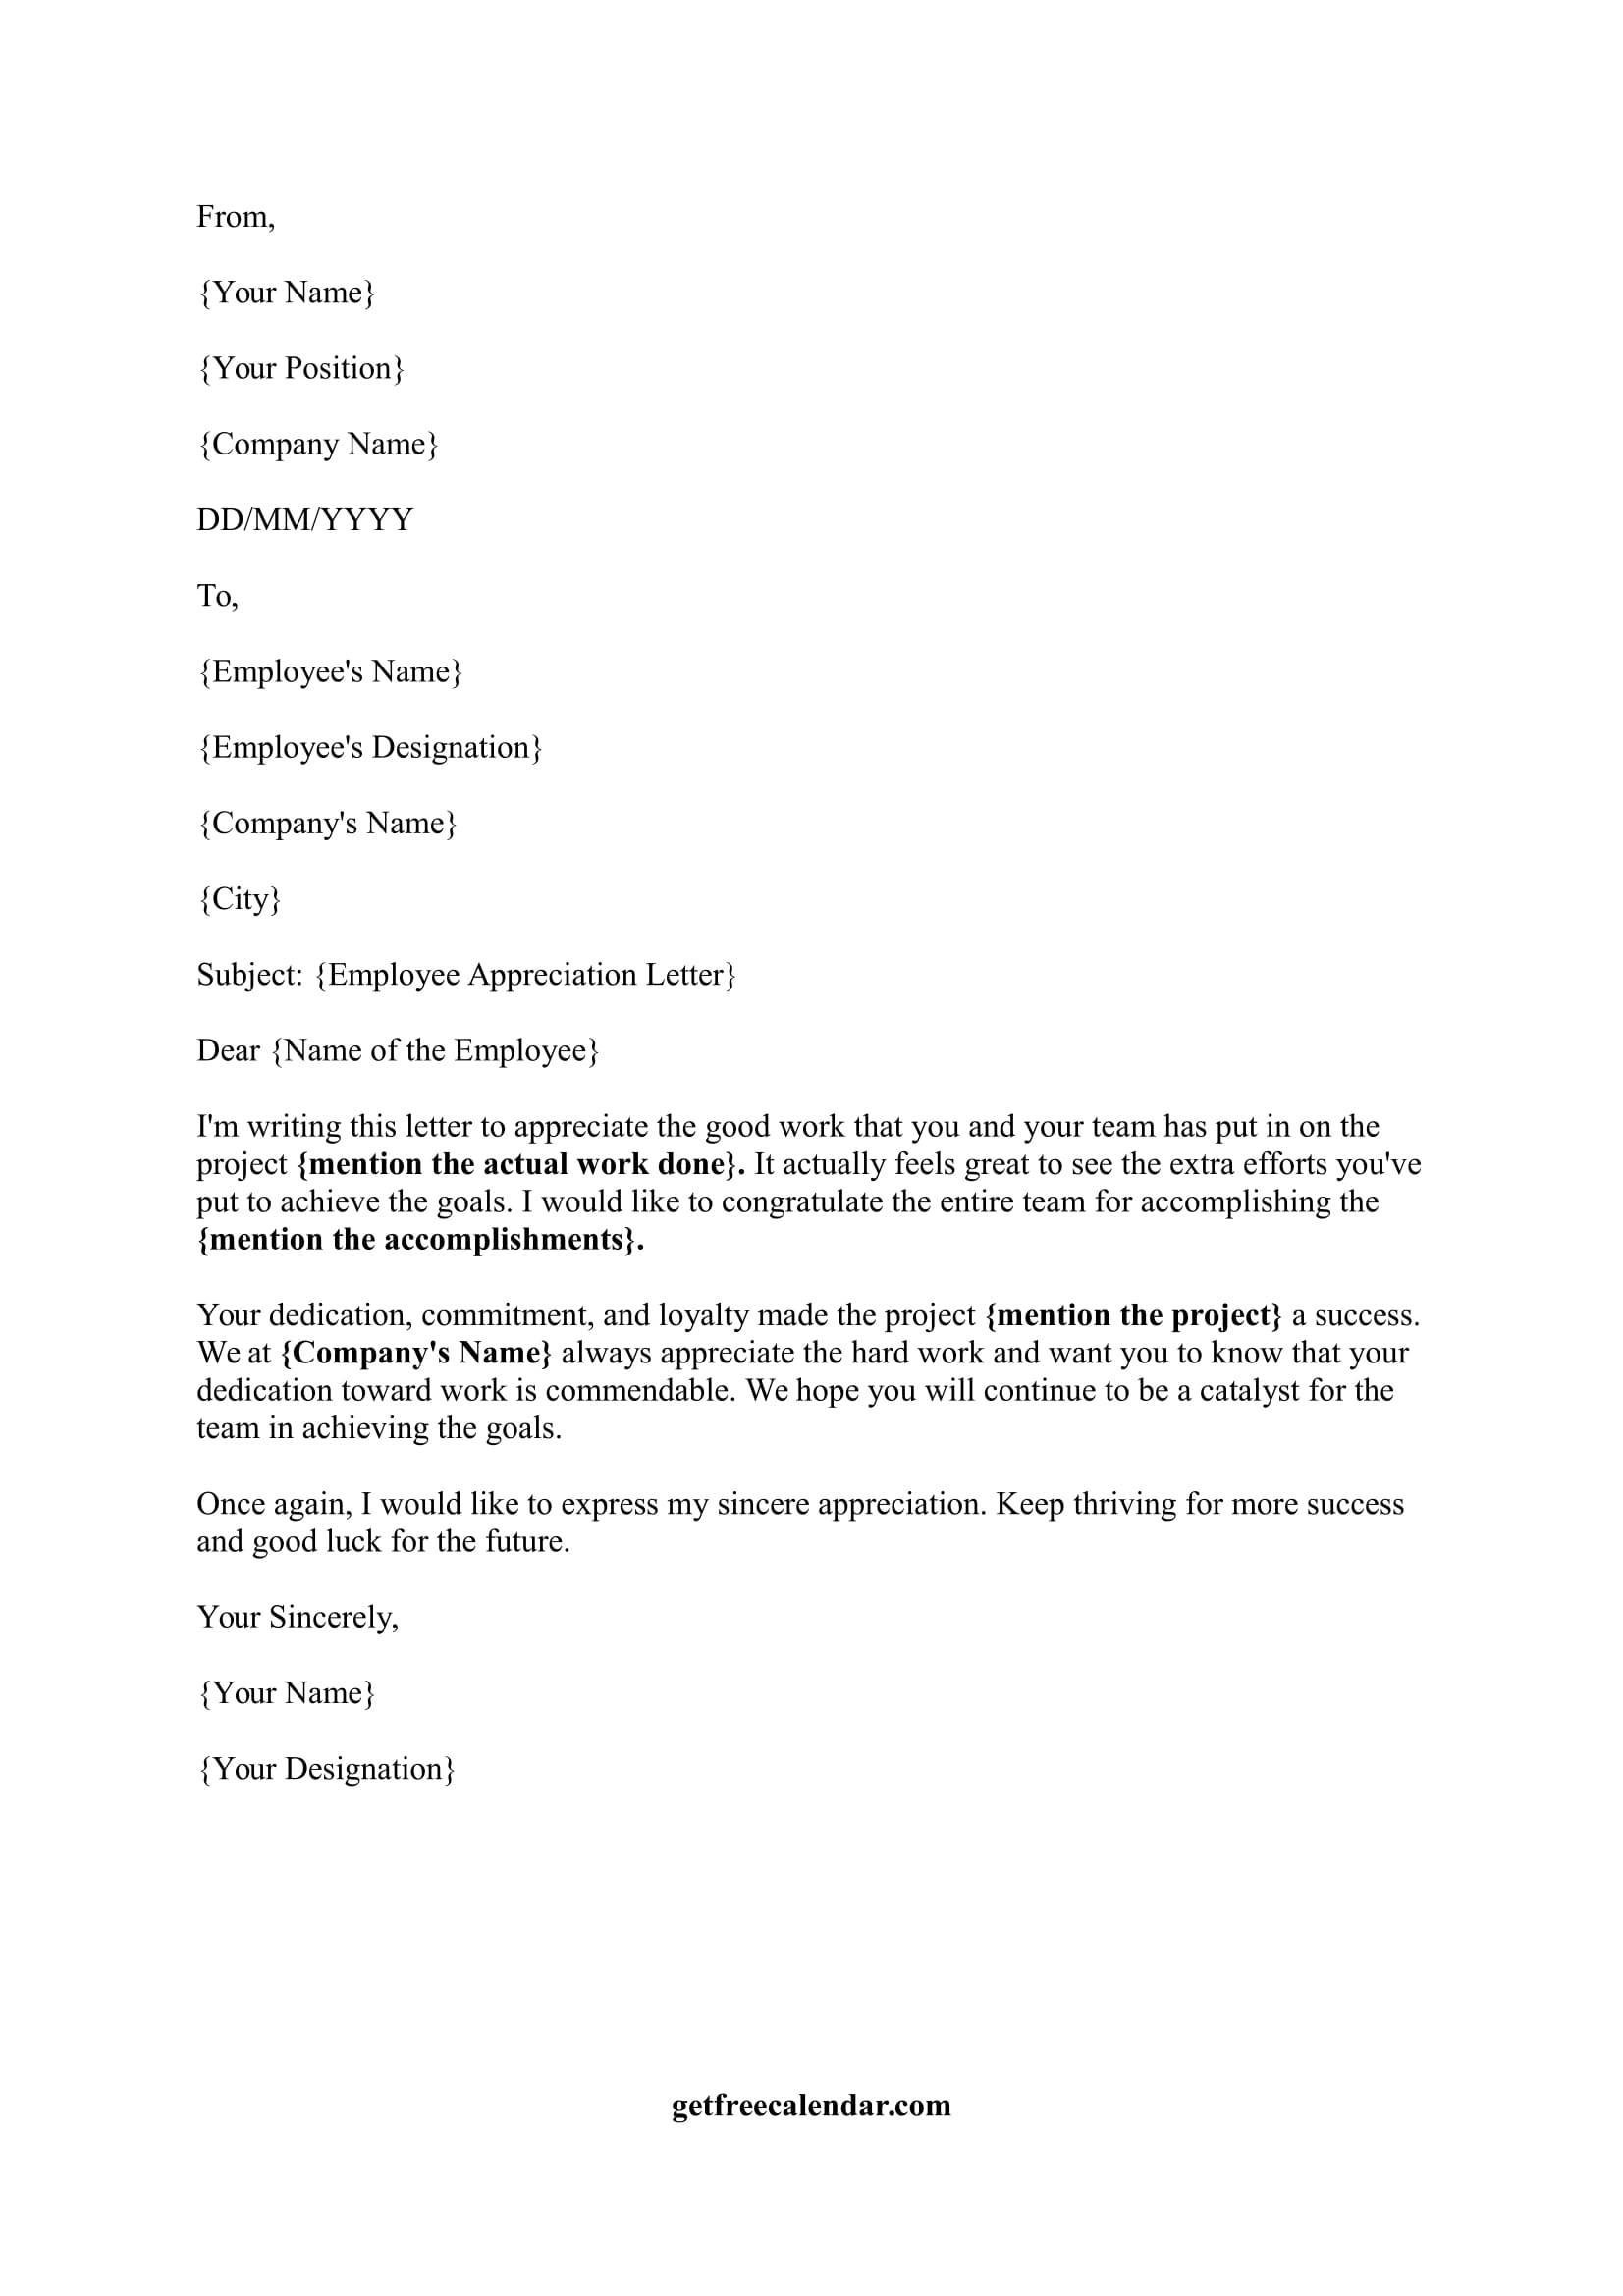 Download Employee Appreciation Letter In Format